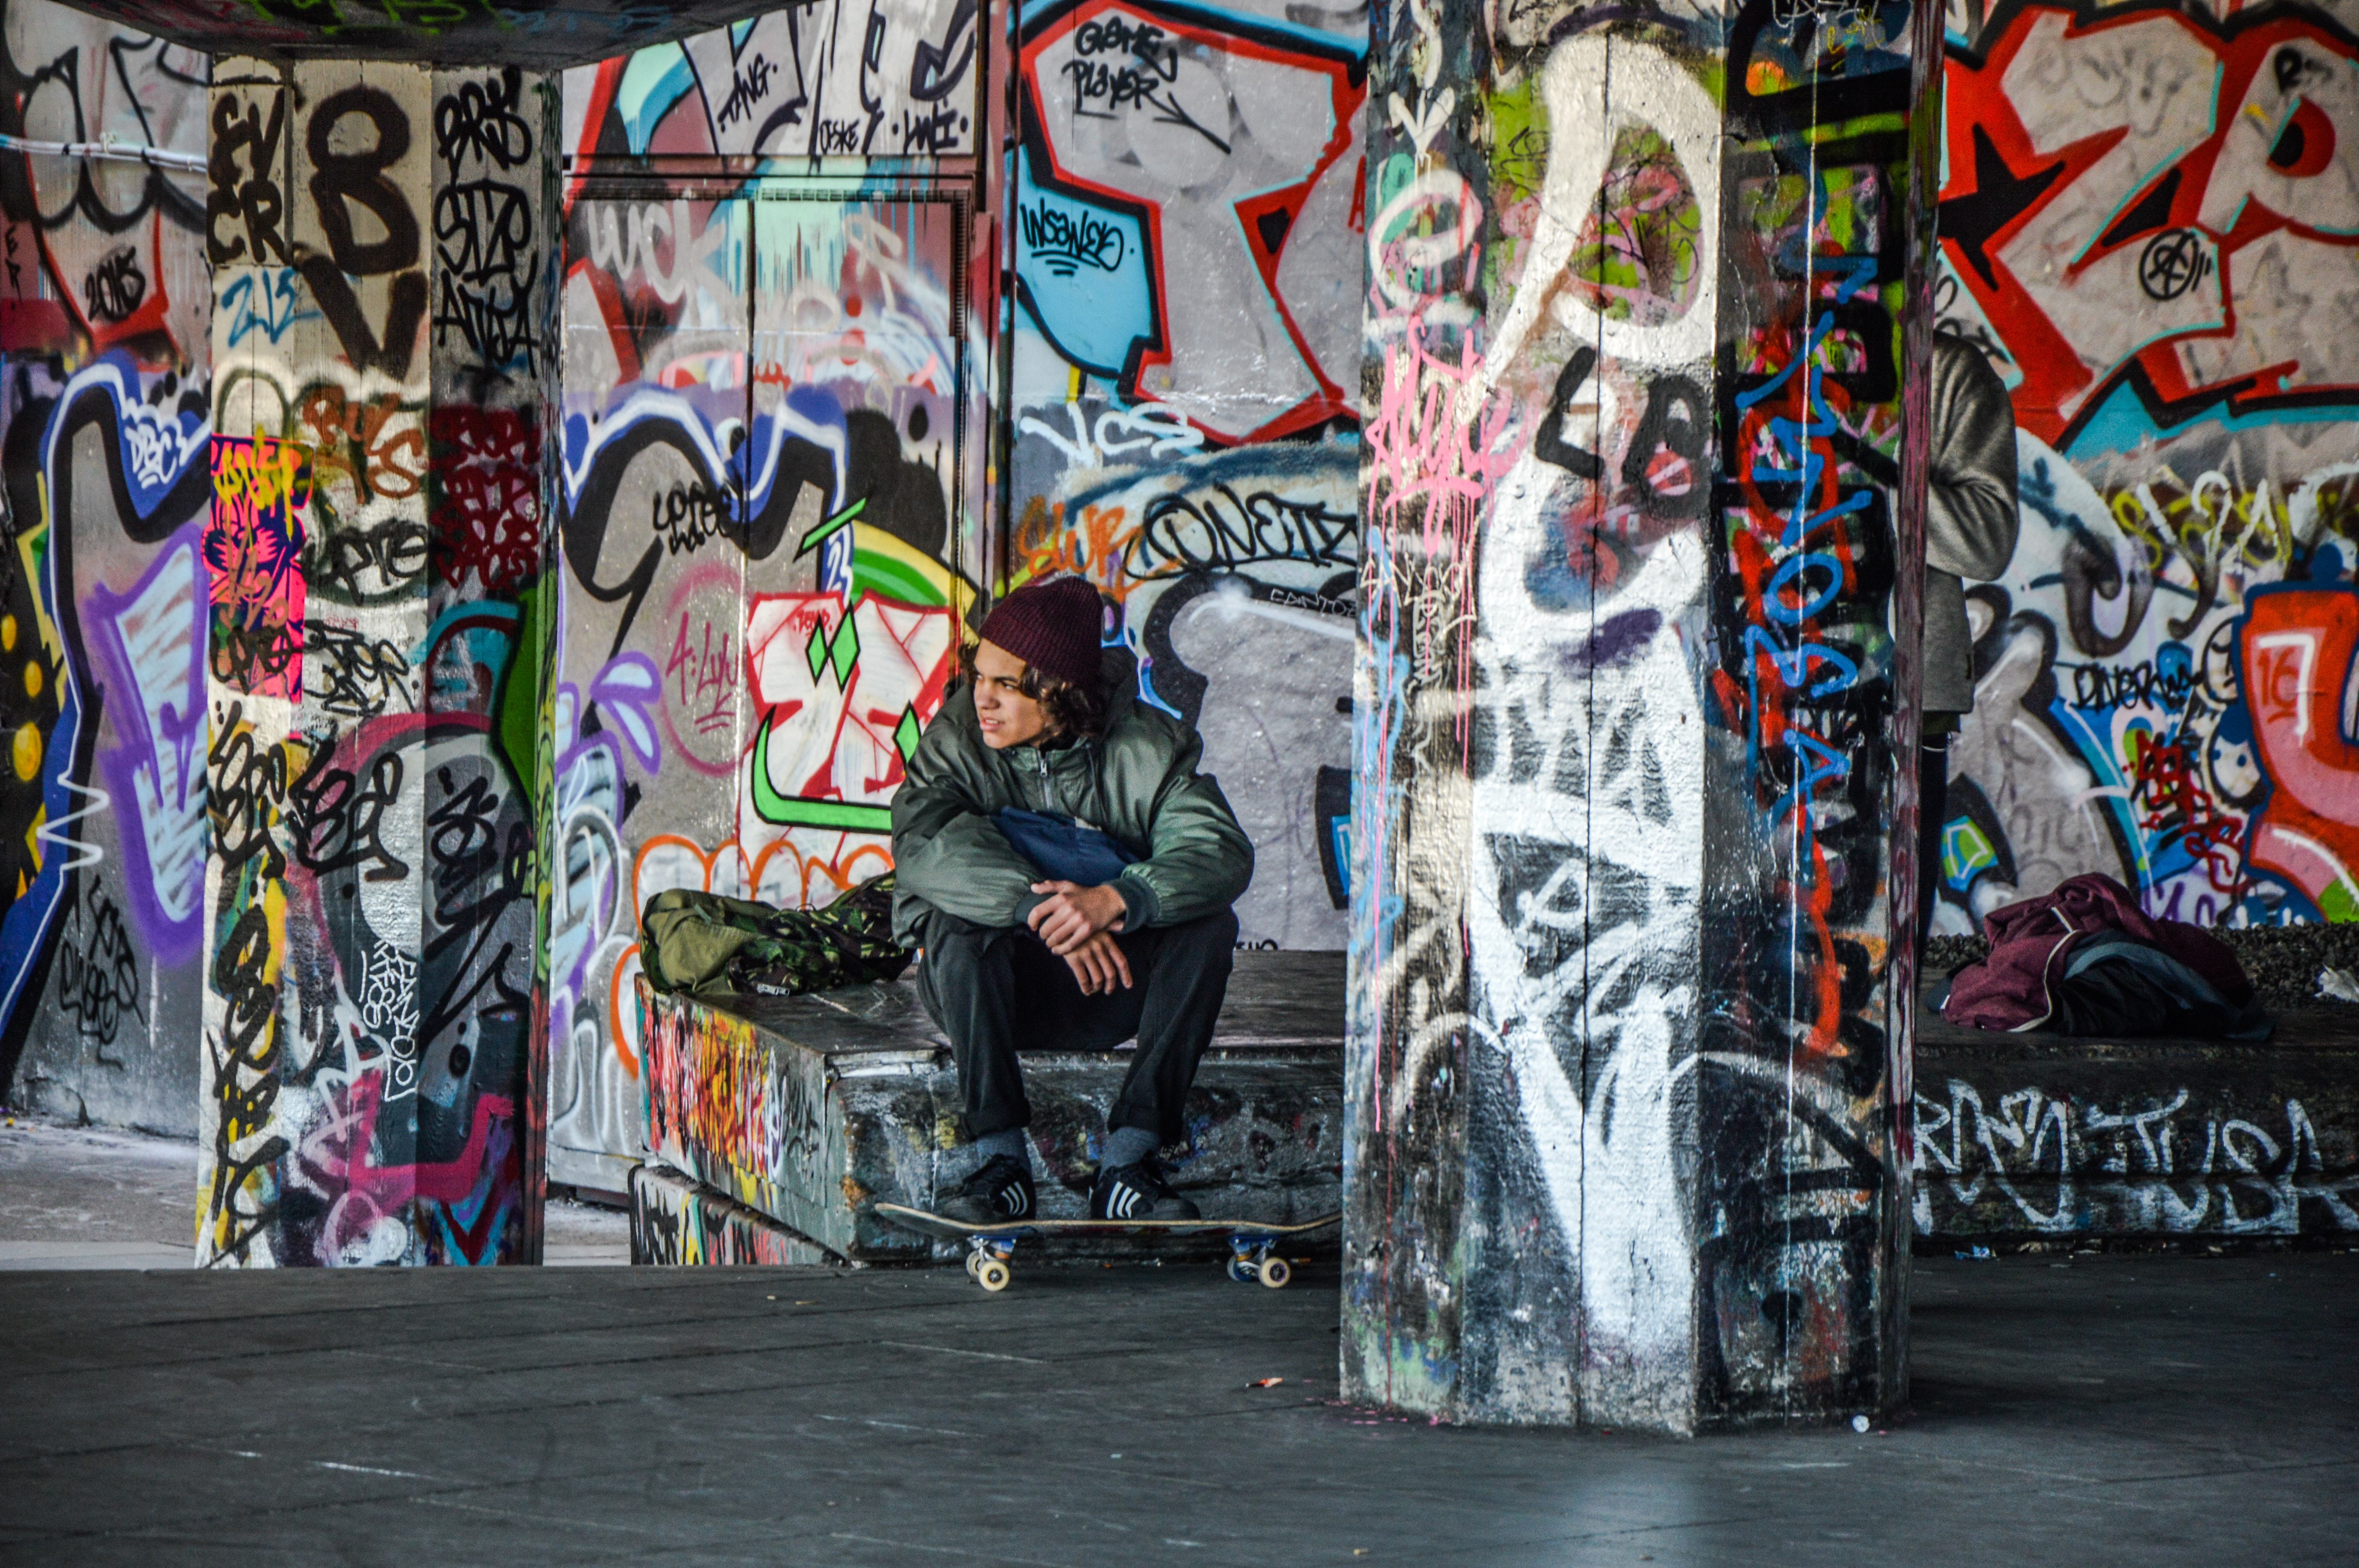 Young man with skateboard sitting in urban area with walls covered in colorful graffiti, London